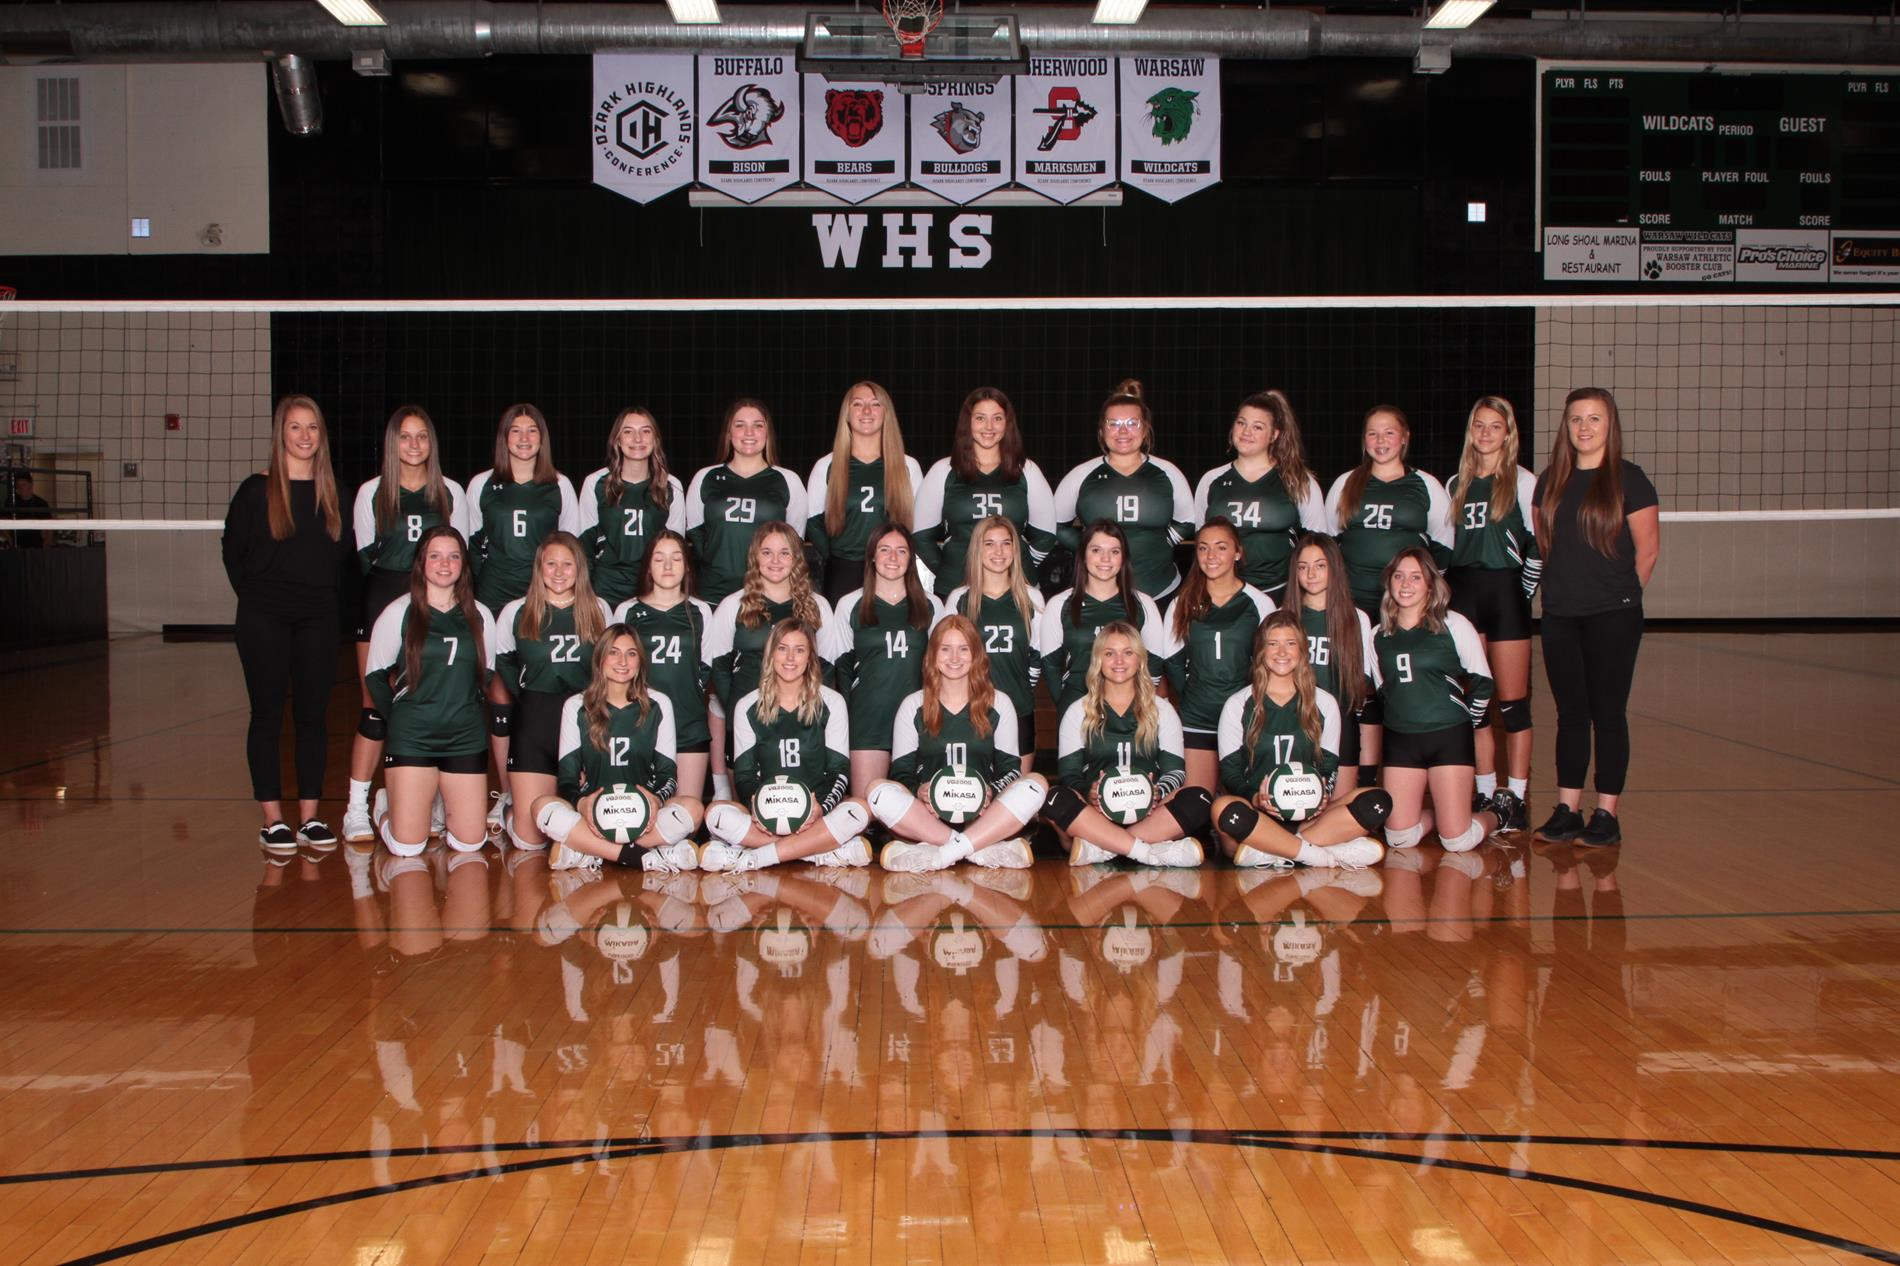 WHS VOLLEYBALL TEAM